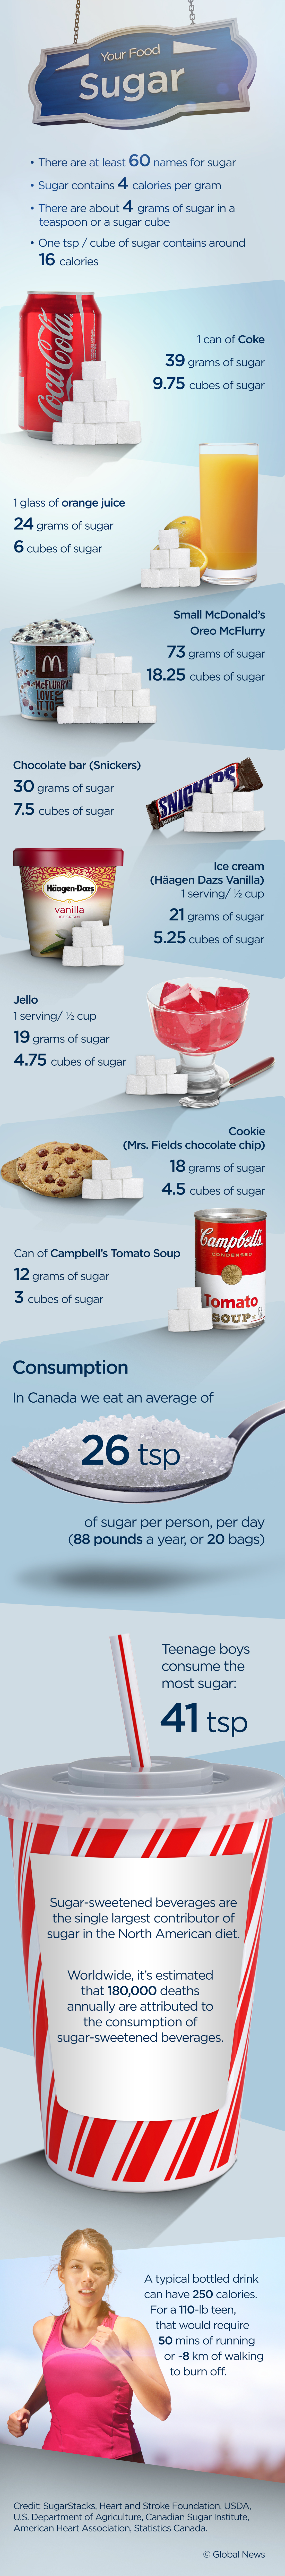 sugar in our diet